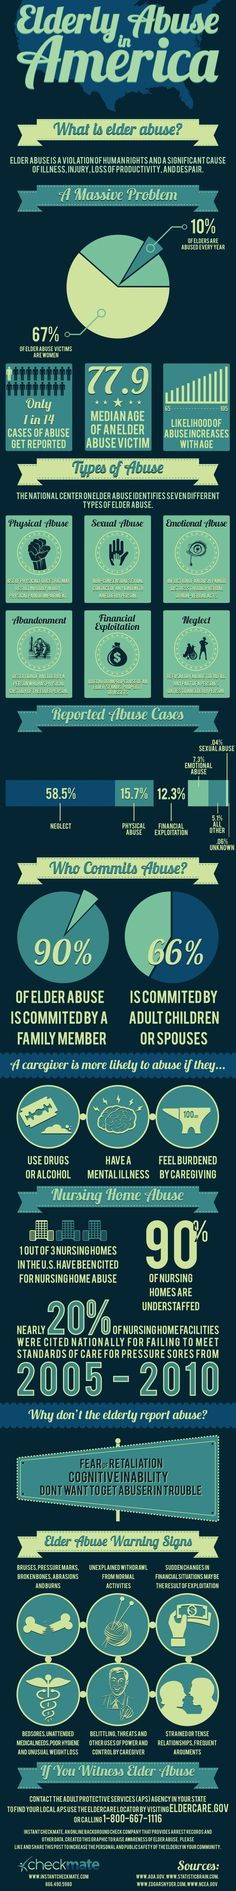 Elder Abuse in America Infographic -- June 15th is World Elder Abuse Awareness Day #parentabuse